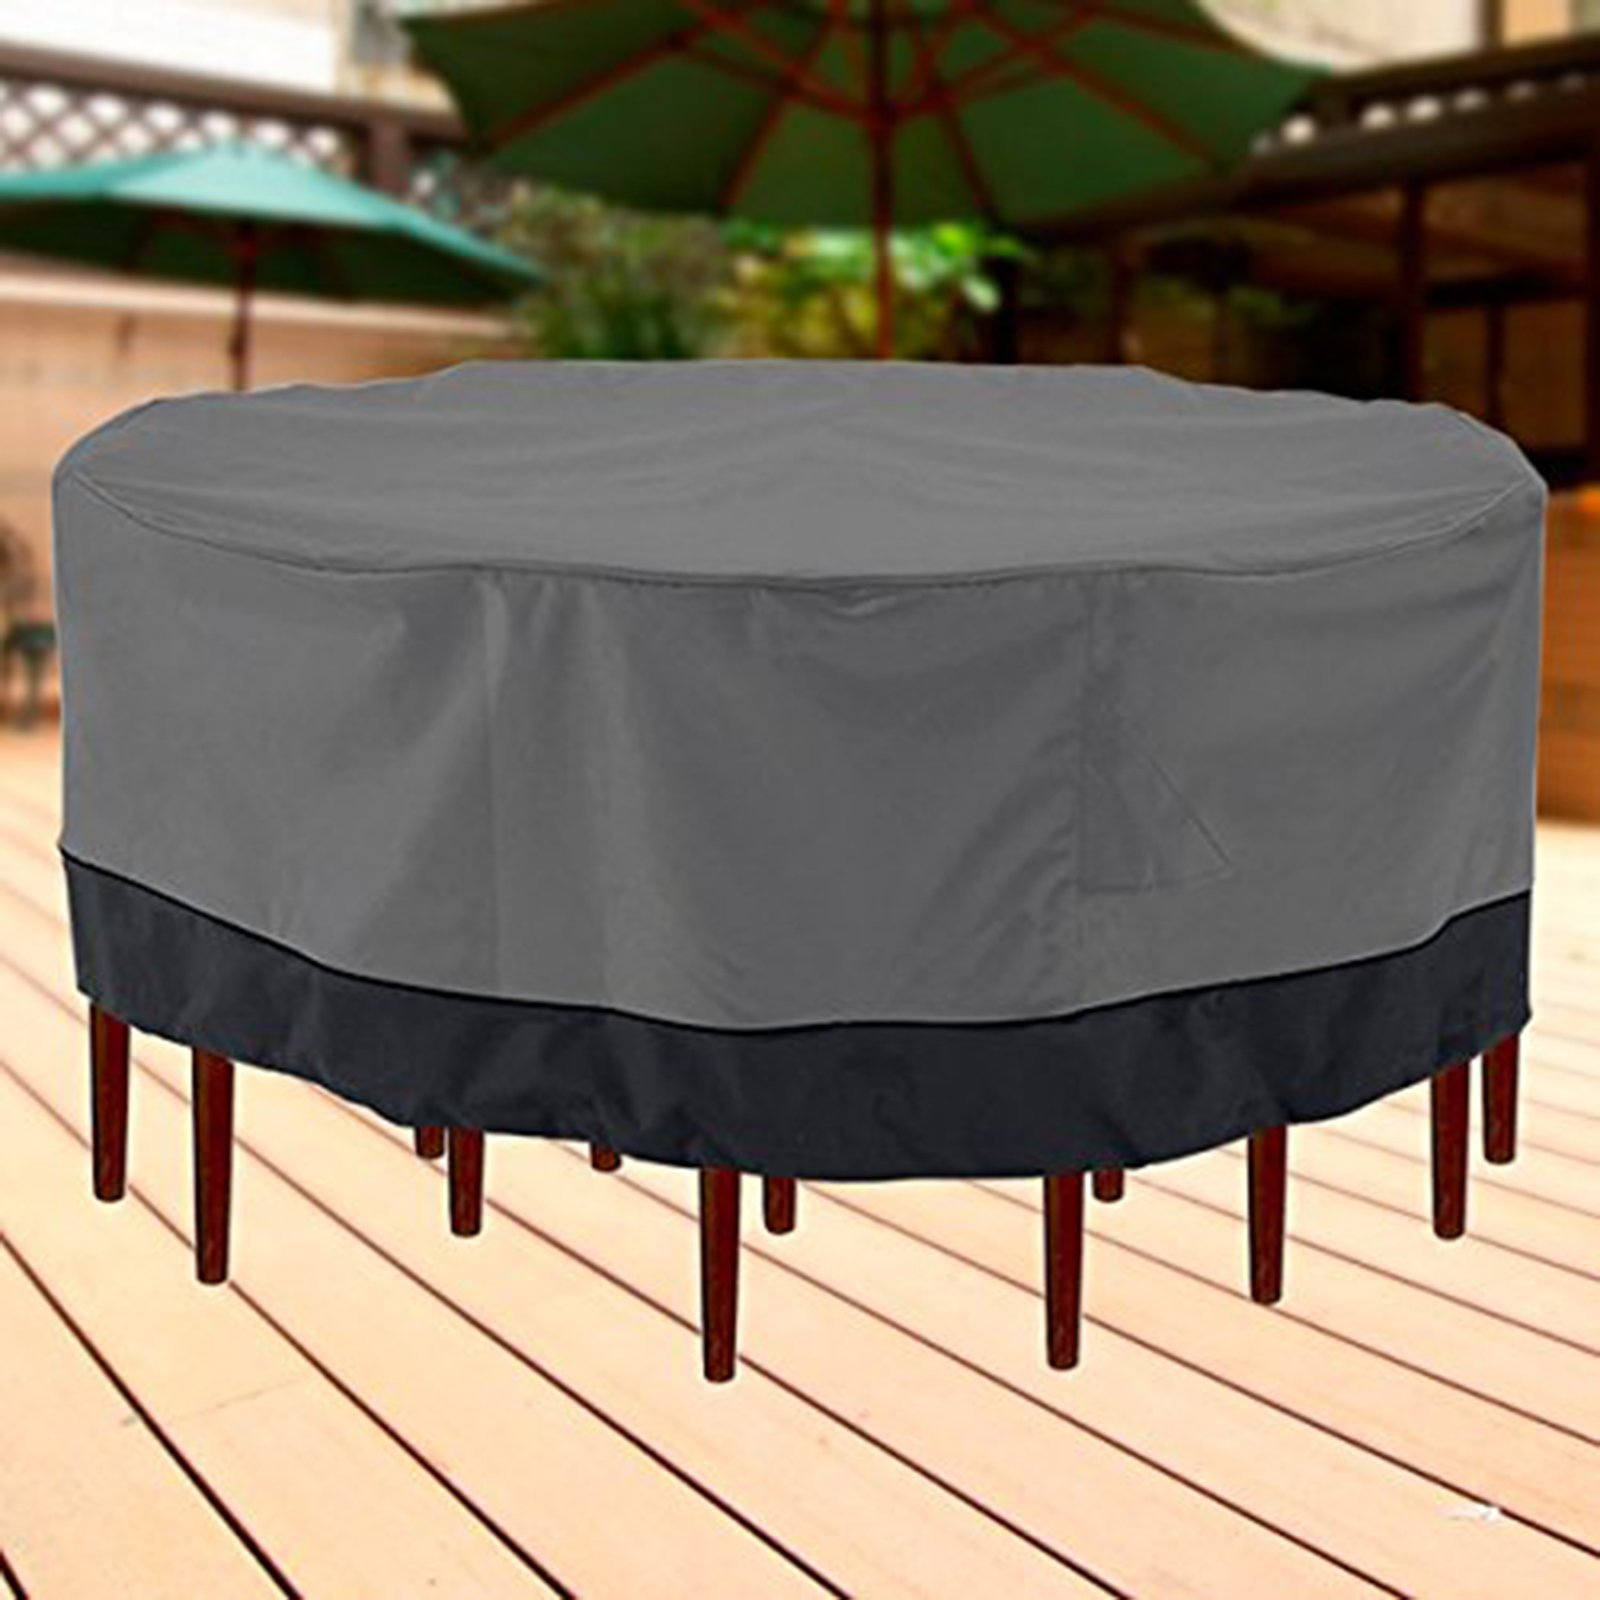 cheap black patio furniture find black patio furniture deals on rh guide alibaba com outdoor furniture square table covers outdoor furniture square table covers